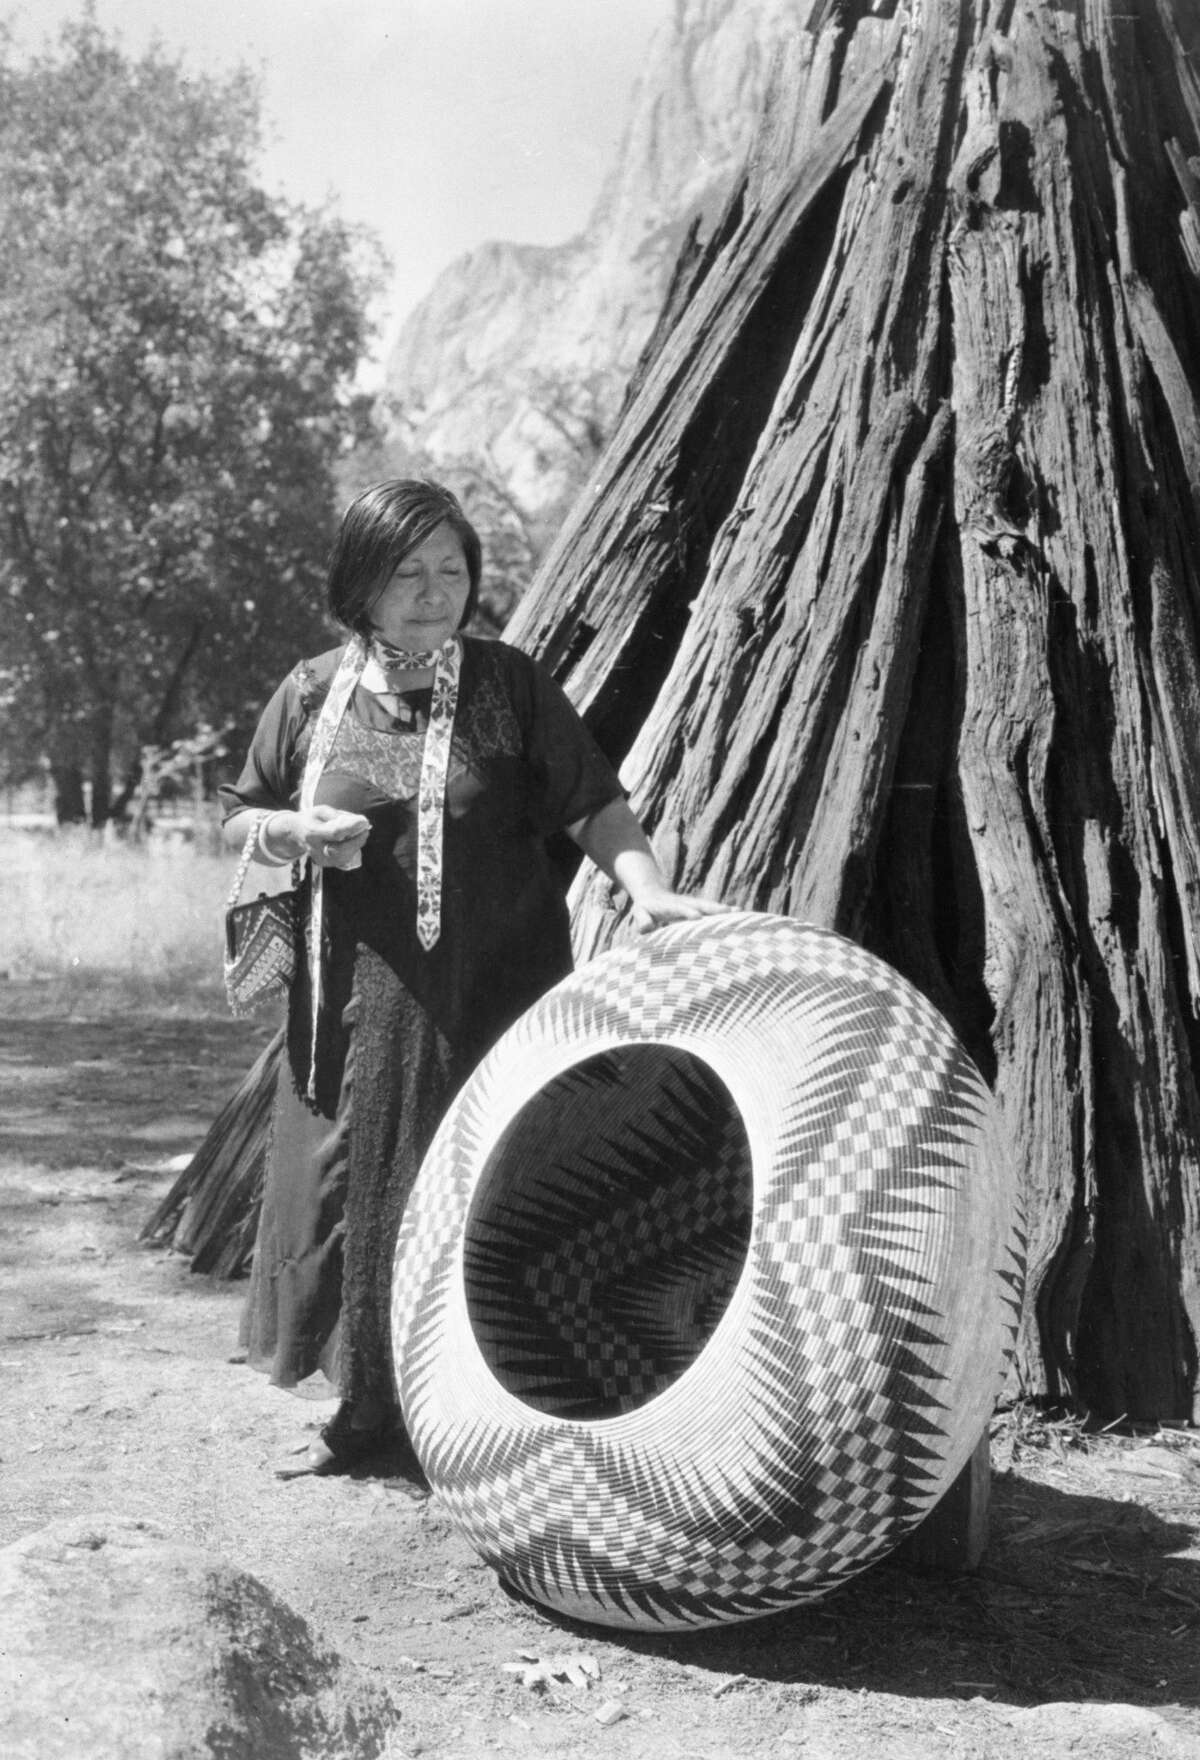 Helen Coats' grandmother Lucy Telles excelled at basket weaving. Her work is displayed in the Yosemite Museum.